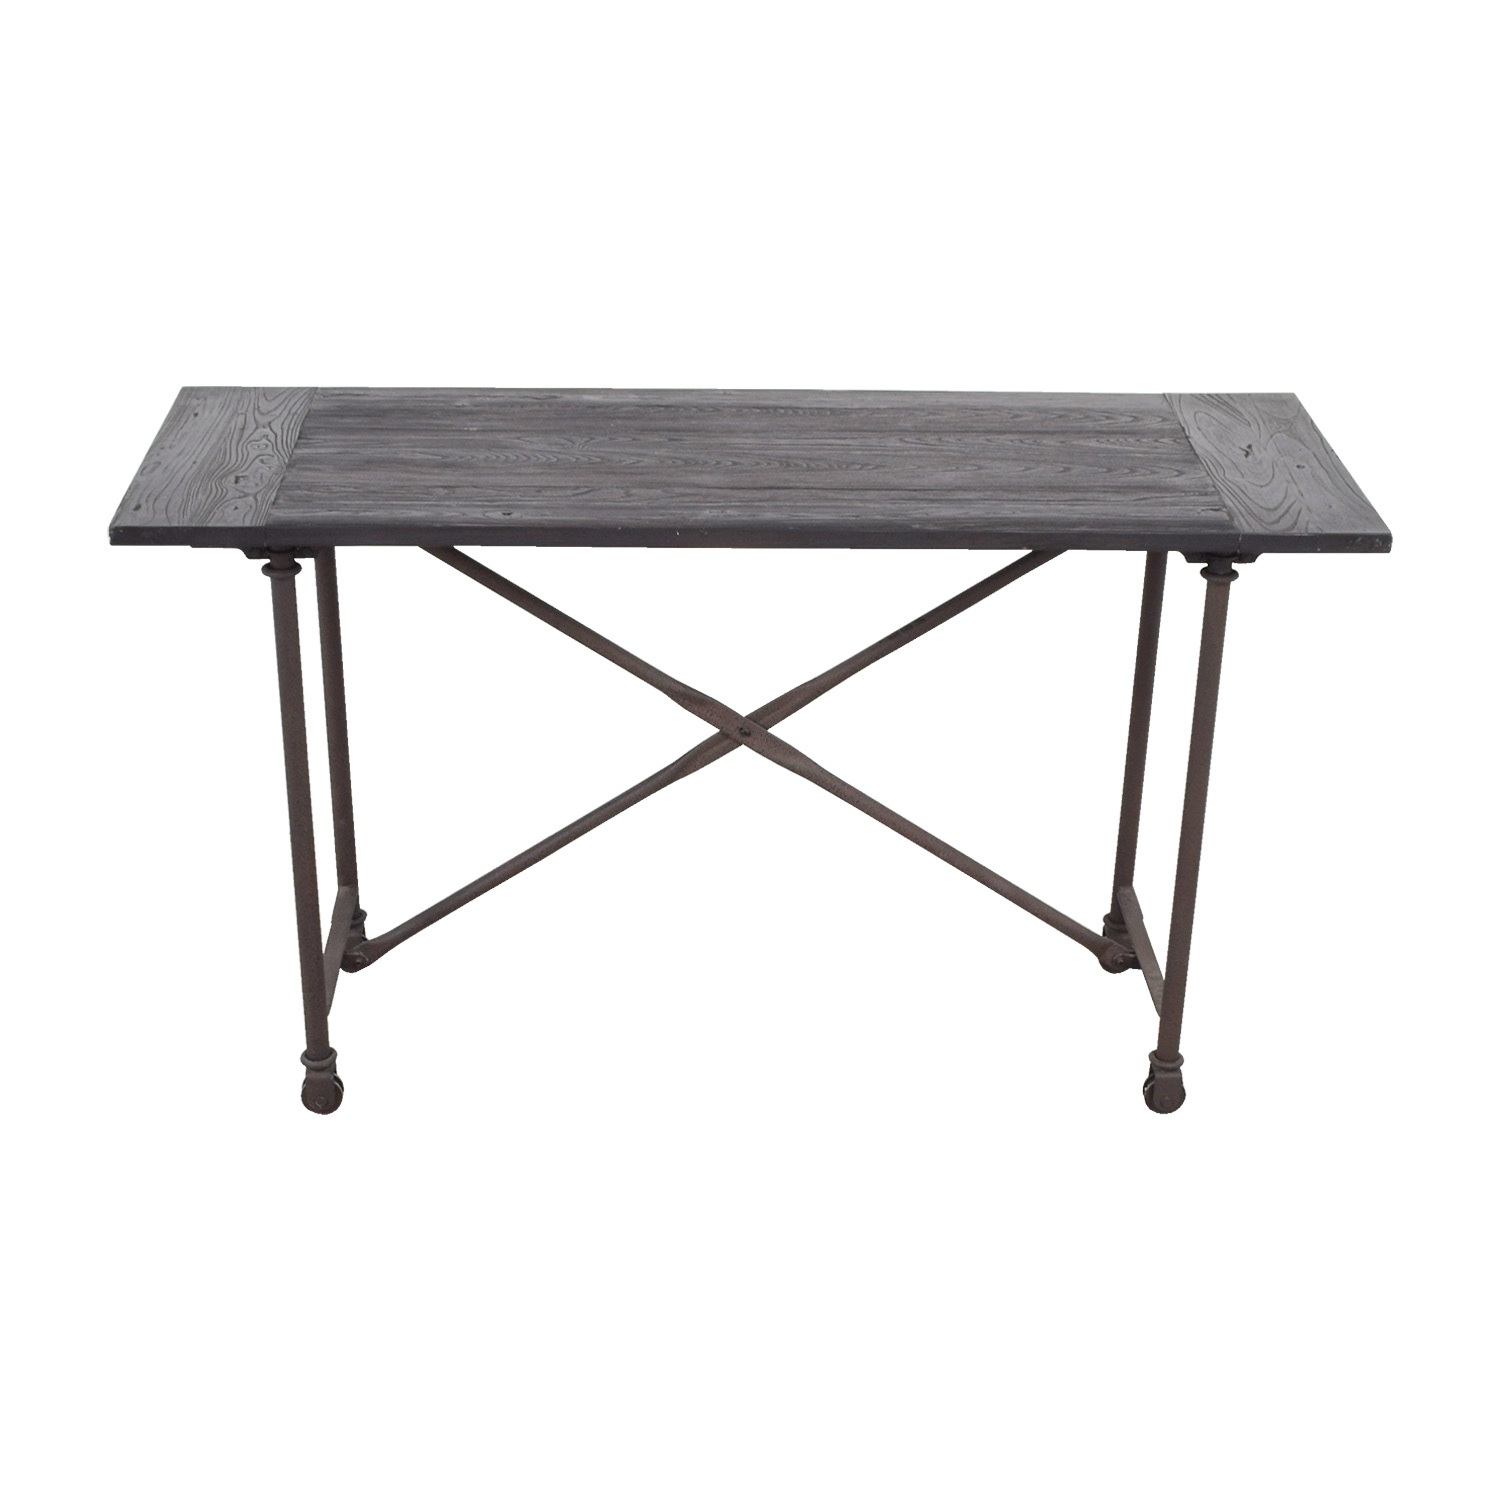 Restoration Hardware Restoration Hardware Flatiron Bar Table dimensions